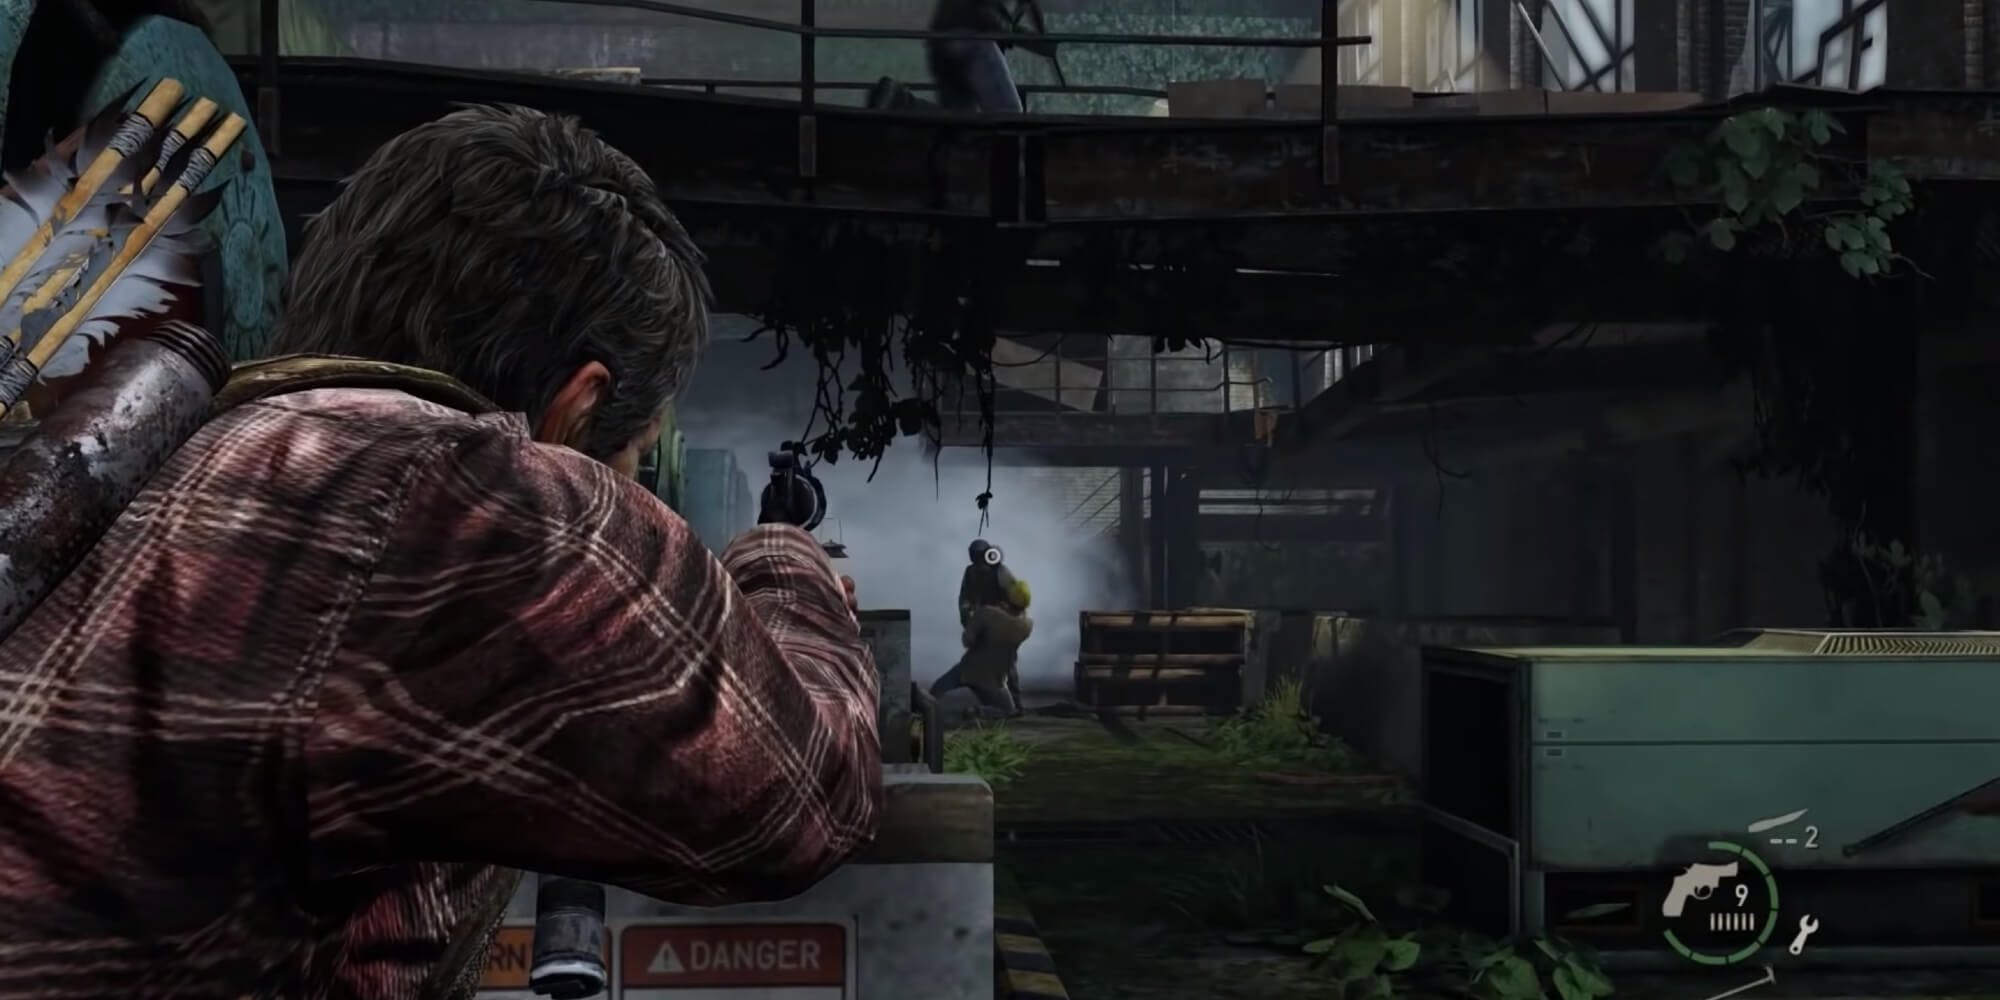 The Last of Us - combat sequence